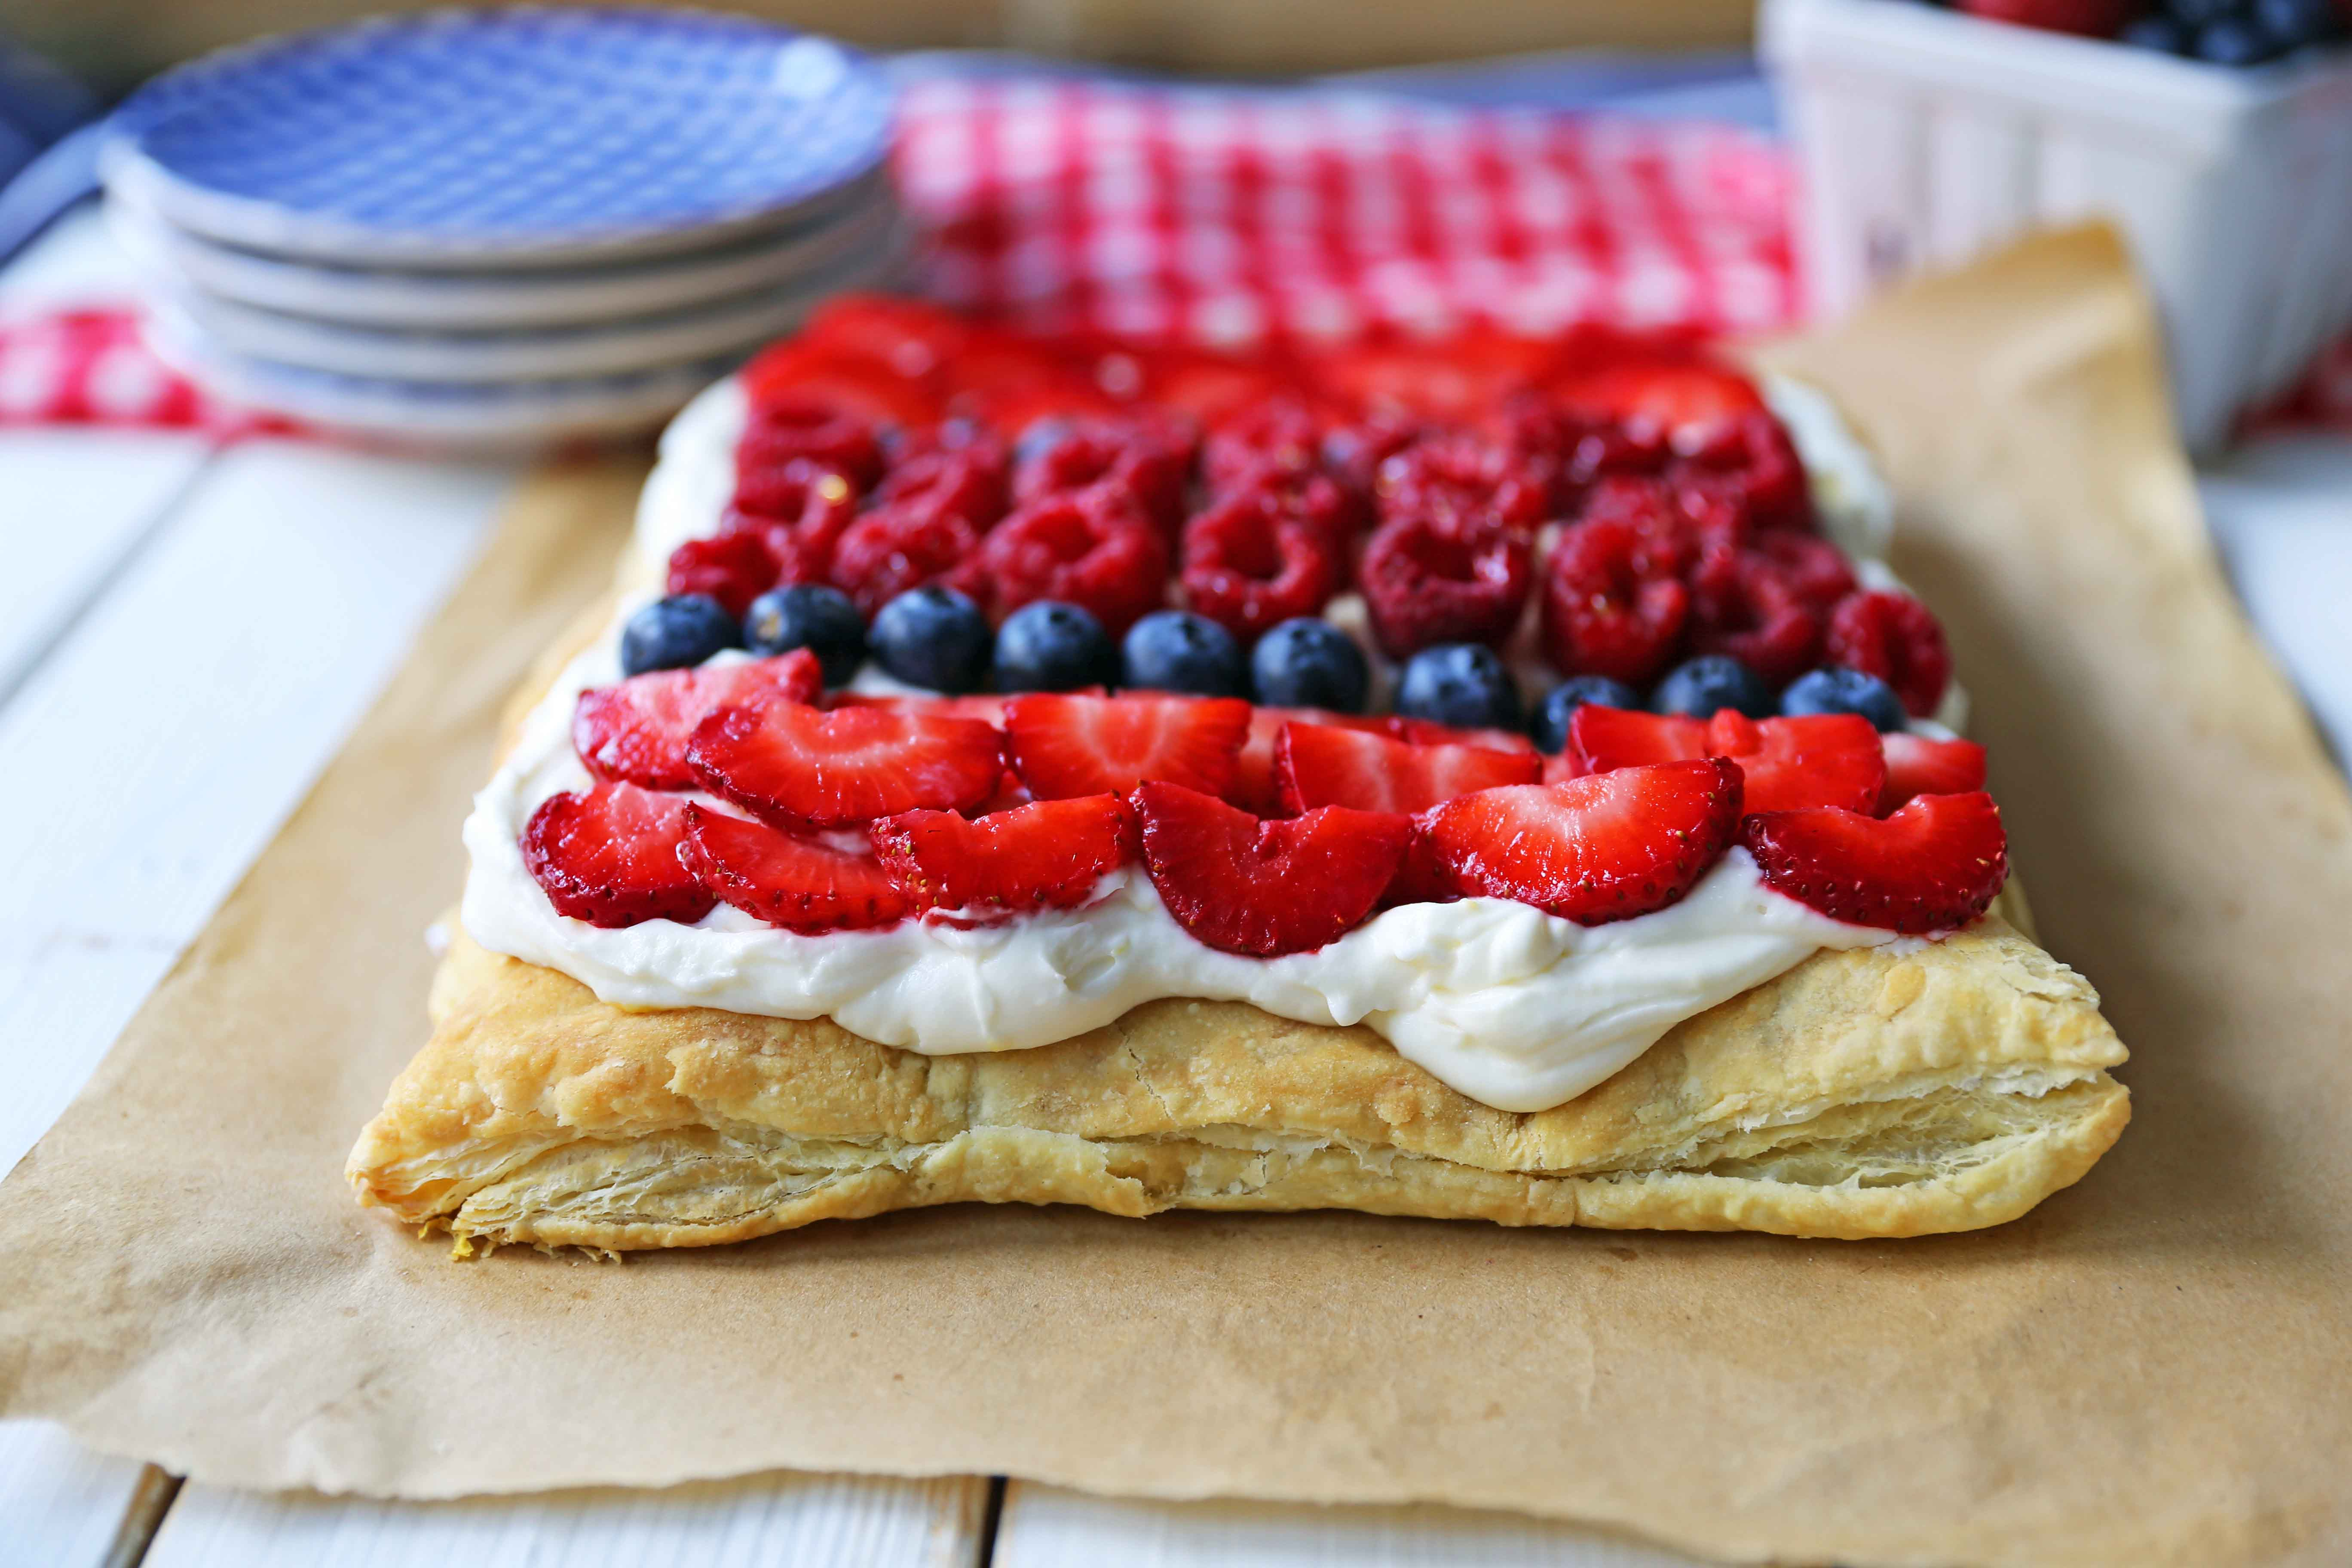 Lemon Berry Cheesecake Puff Pastry Baked Puff Pastry topped with Lemon Cheesecake Filling and Fresh Berries. An easy, beautiful, festive summer dessert.www.modernhoney.com